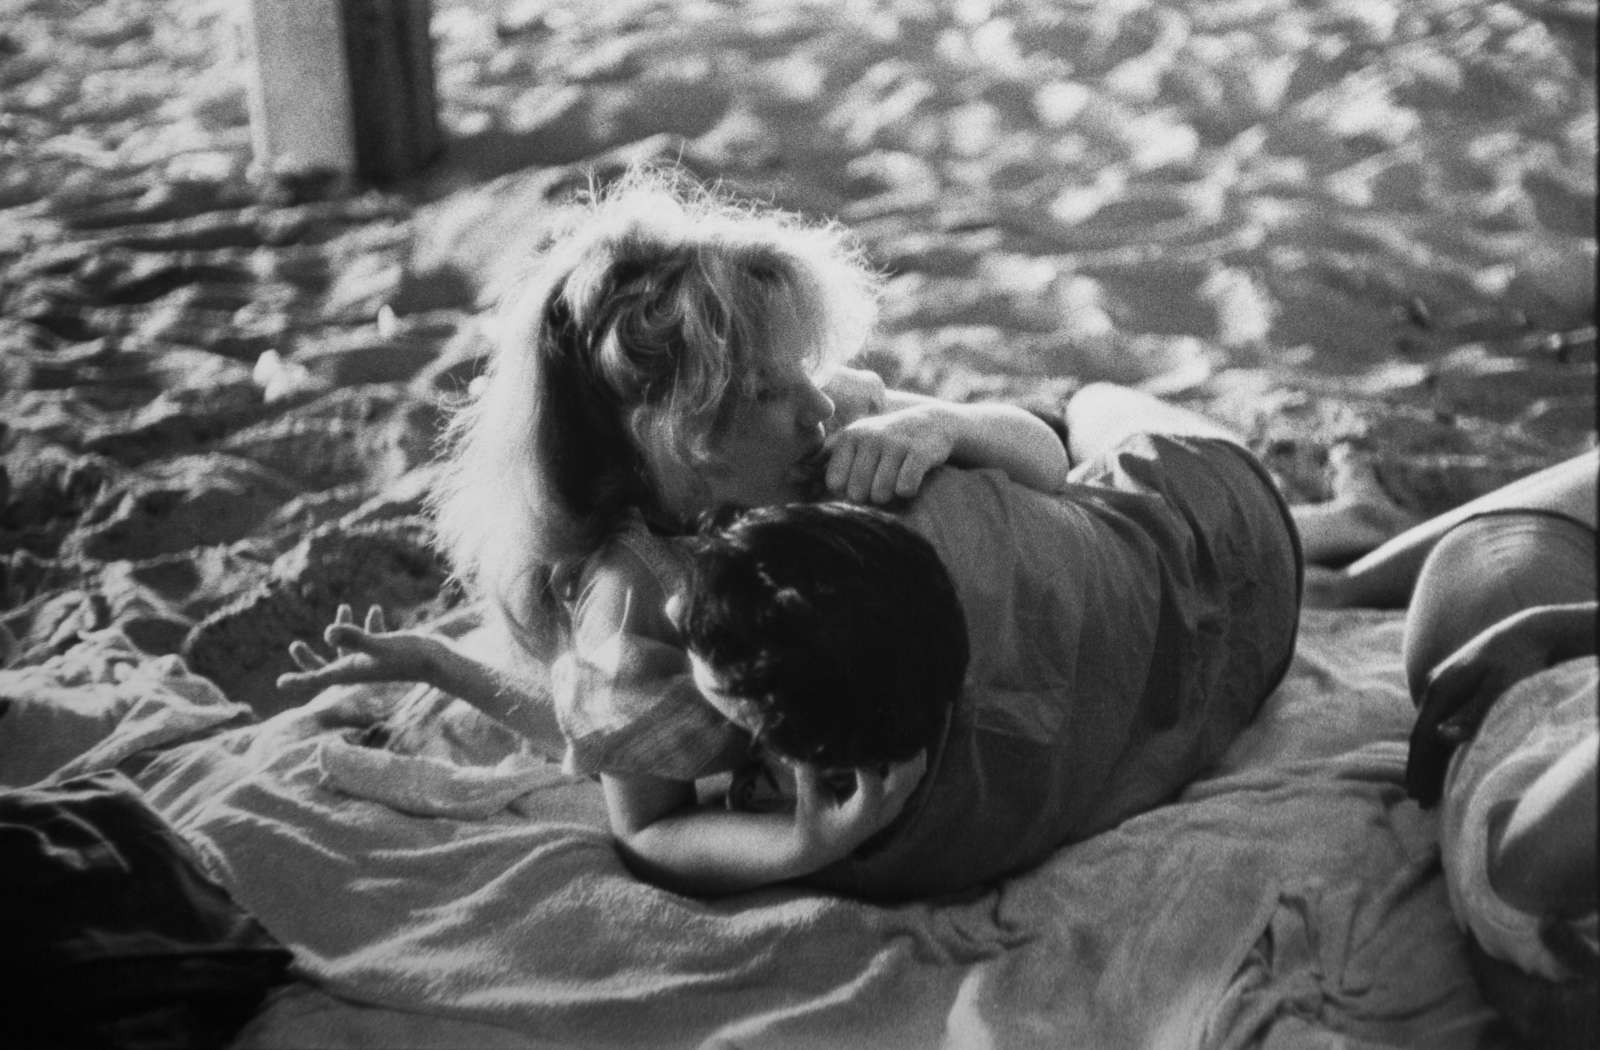 Brooklyn Gang (couple embracing on blanket under boardwalk), 1959